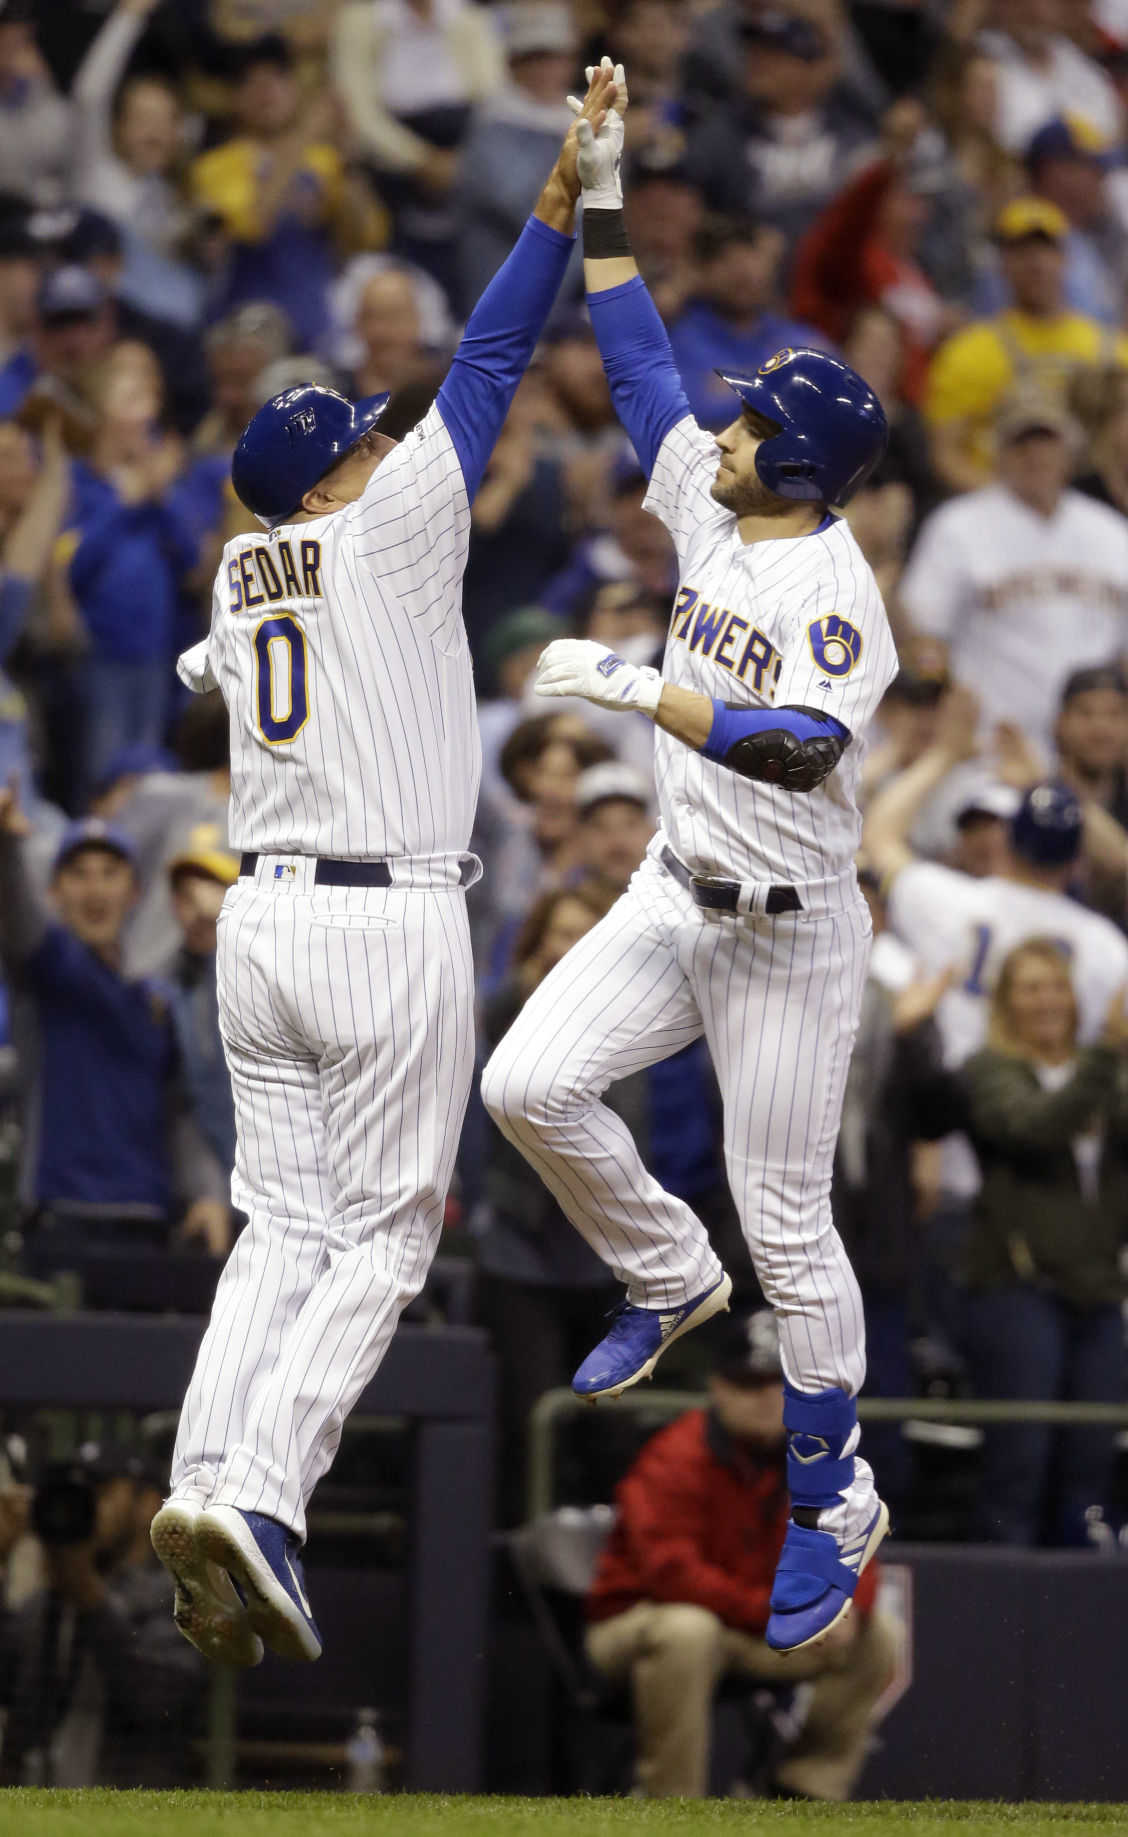 brewers jump page photo 4-21